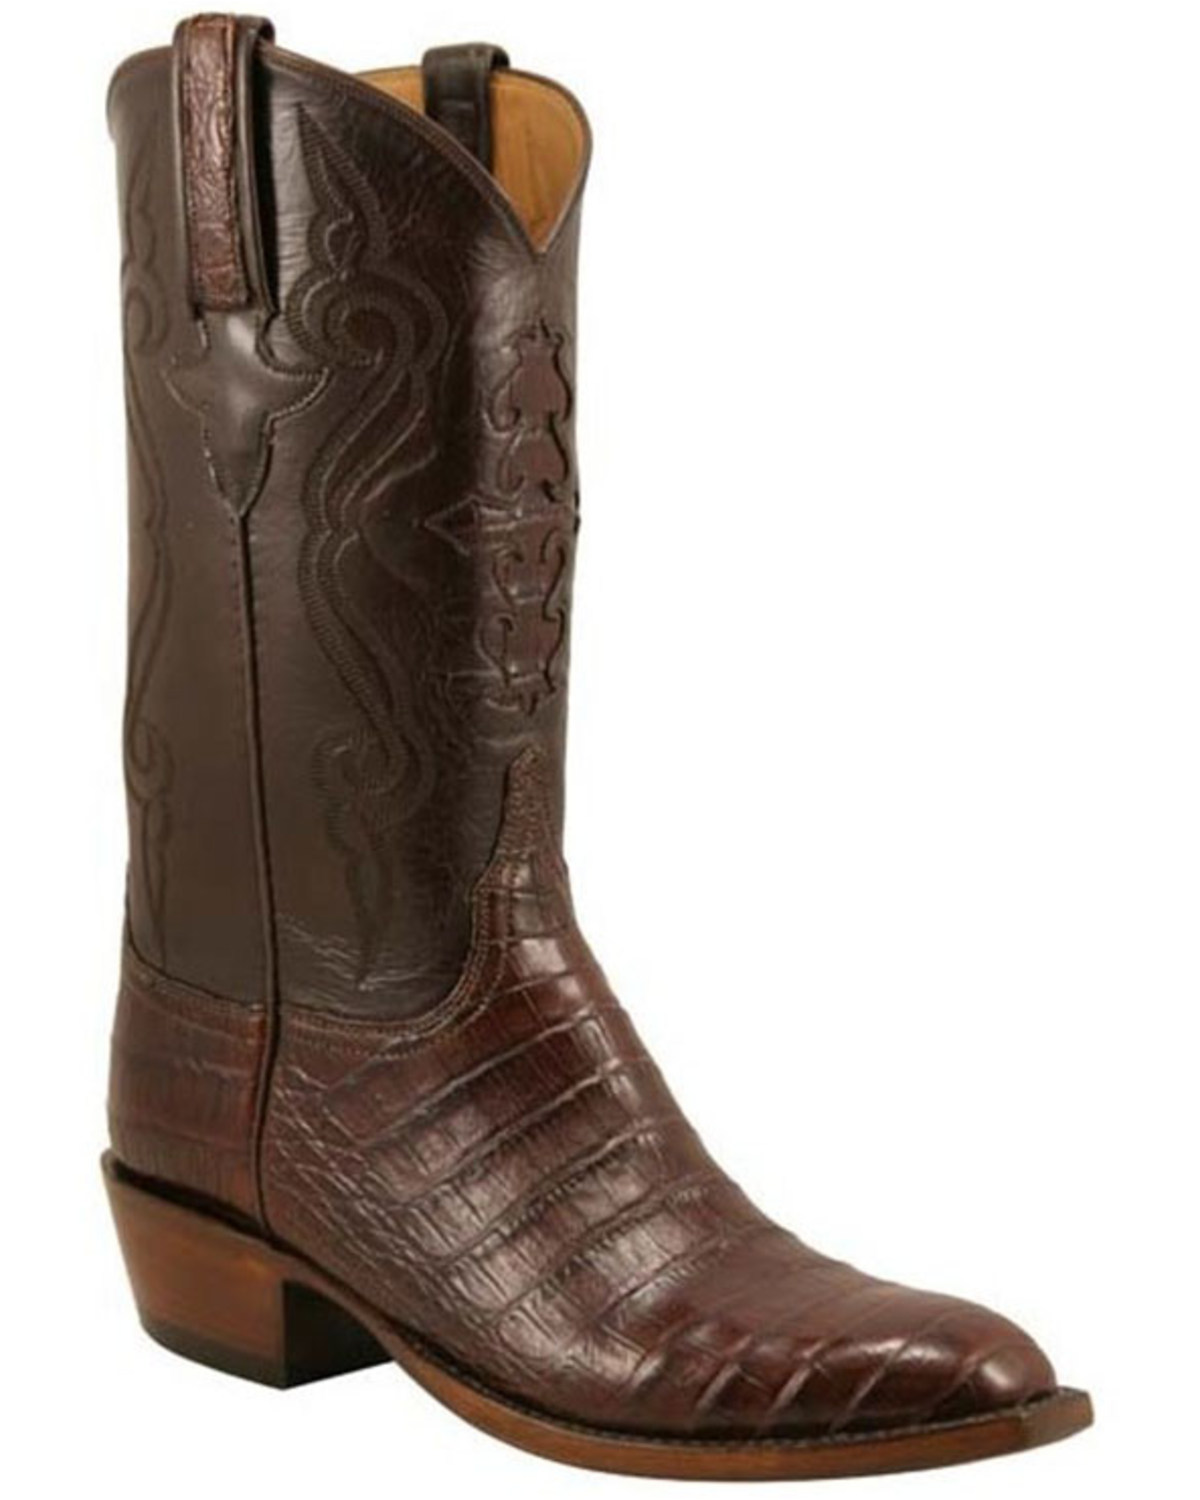 Lucchese Handcrafted Classics Diego Inlay Ultra Caiman